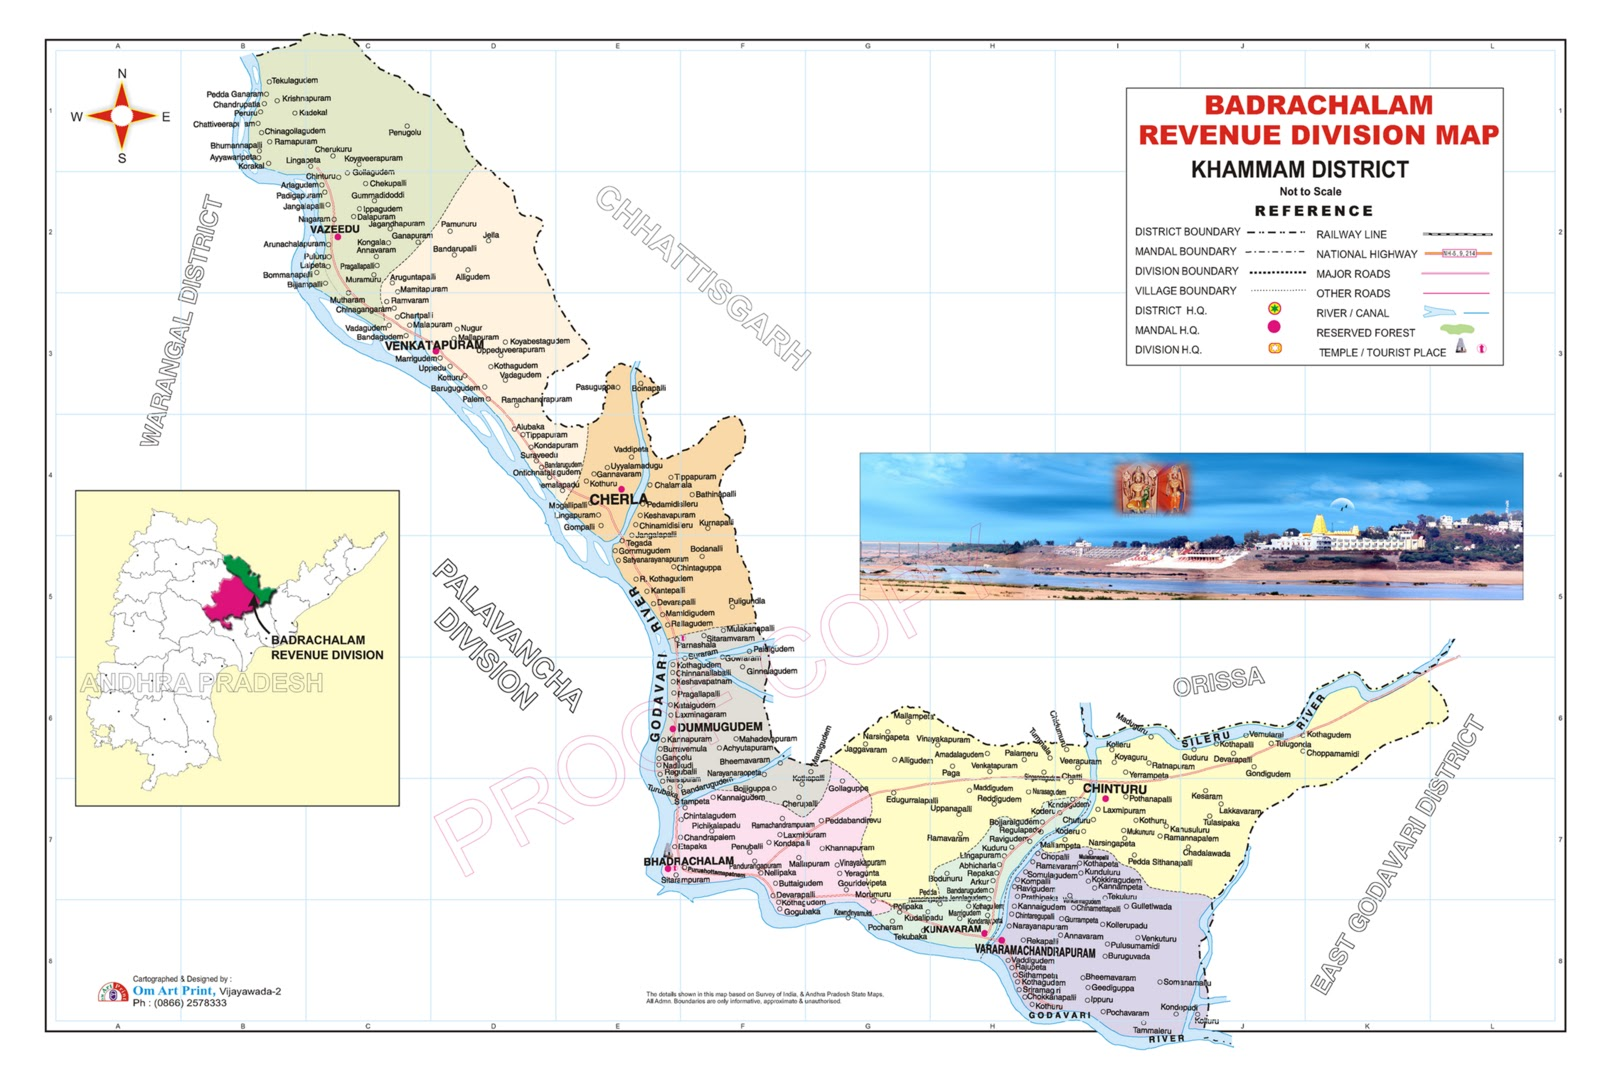 Sub-Collector's Office, Bhadrachalam: Bhadrachalam Division Map